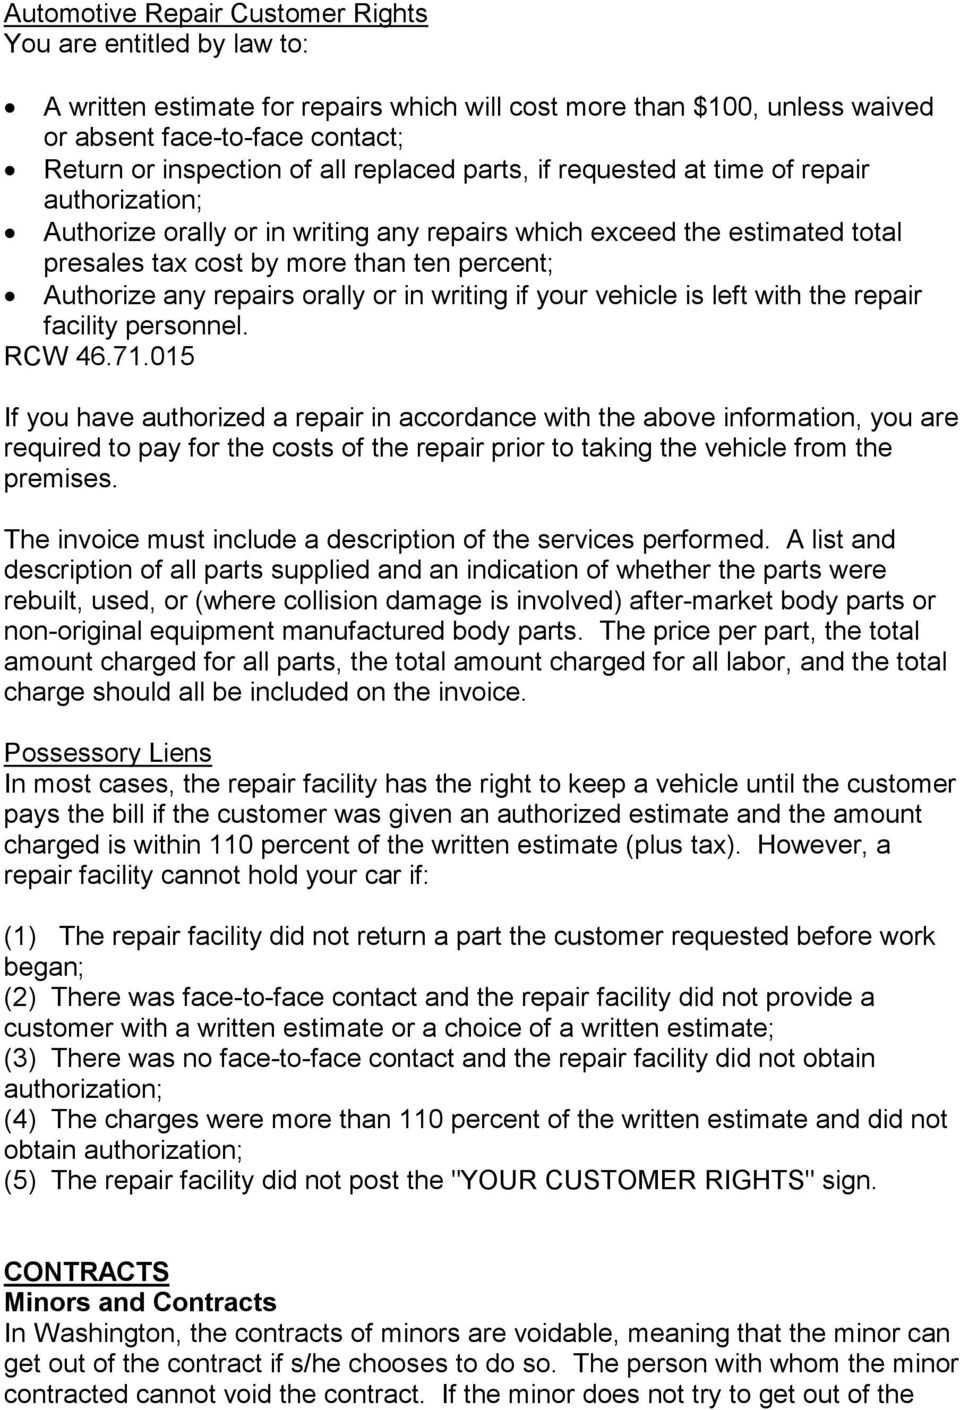 repairs orally or in writing if your vehicle is left with the repair facility personnel. RCW 46.71.